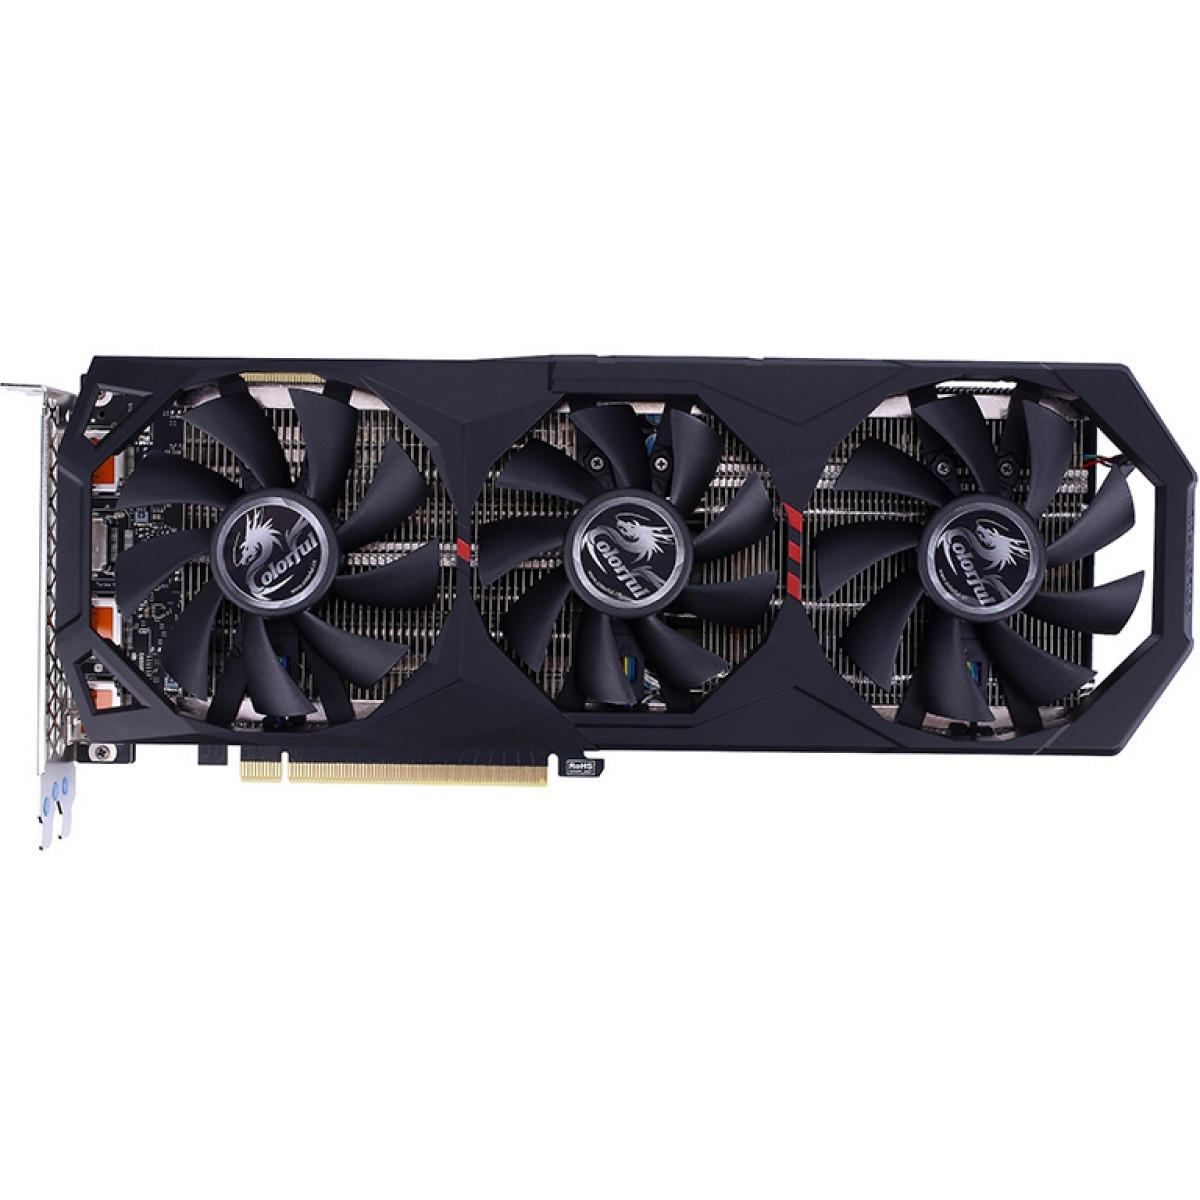 Placa de Vídeo Colorful GeForce RTX 2070 Super, 8GB GDDR6, 256Bit, RTX 2070 Super 8G-V